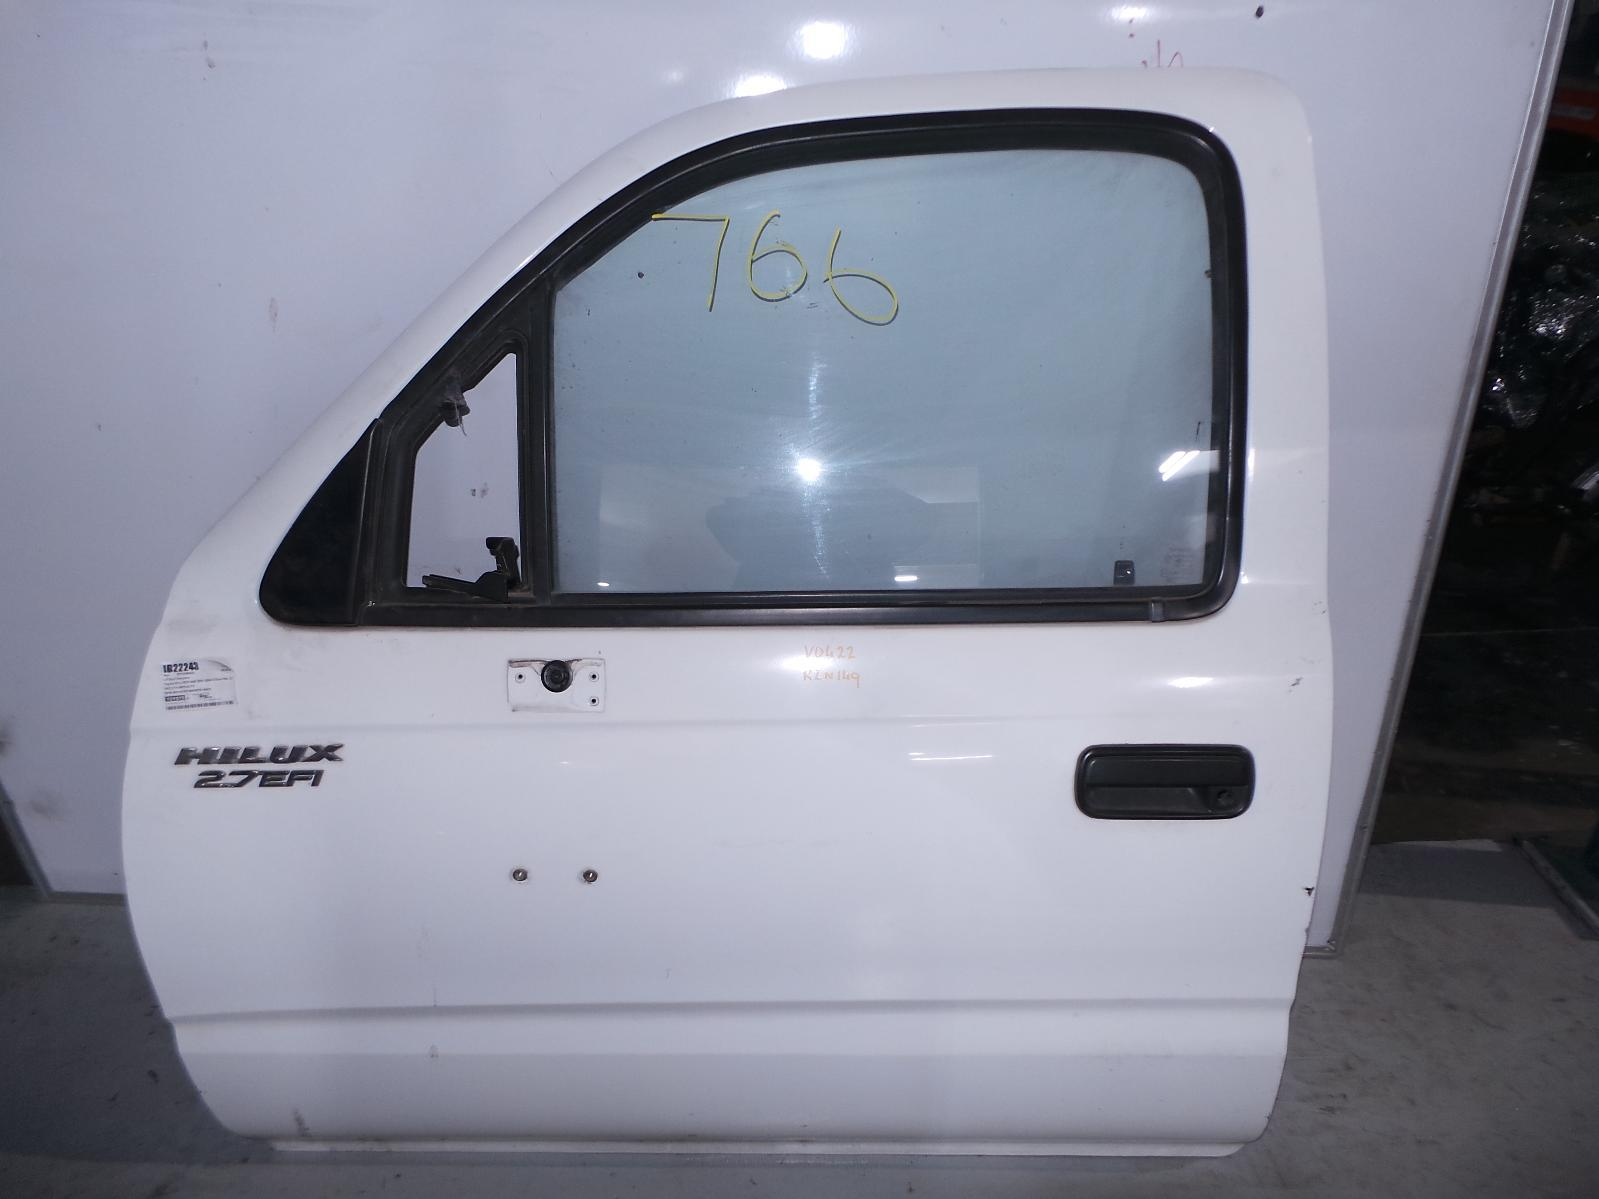 TOYOTA HILUX, Left Front Door, SINGLE/EXTRA CAB, TRAY BACK TYPE (LARGE TRUCK MIRROR), 09/97-03/05